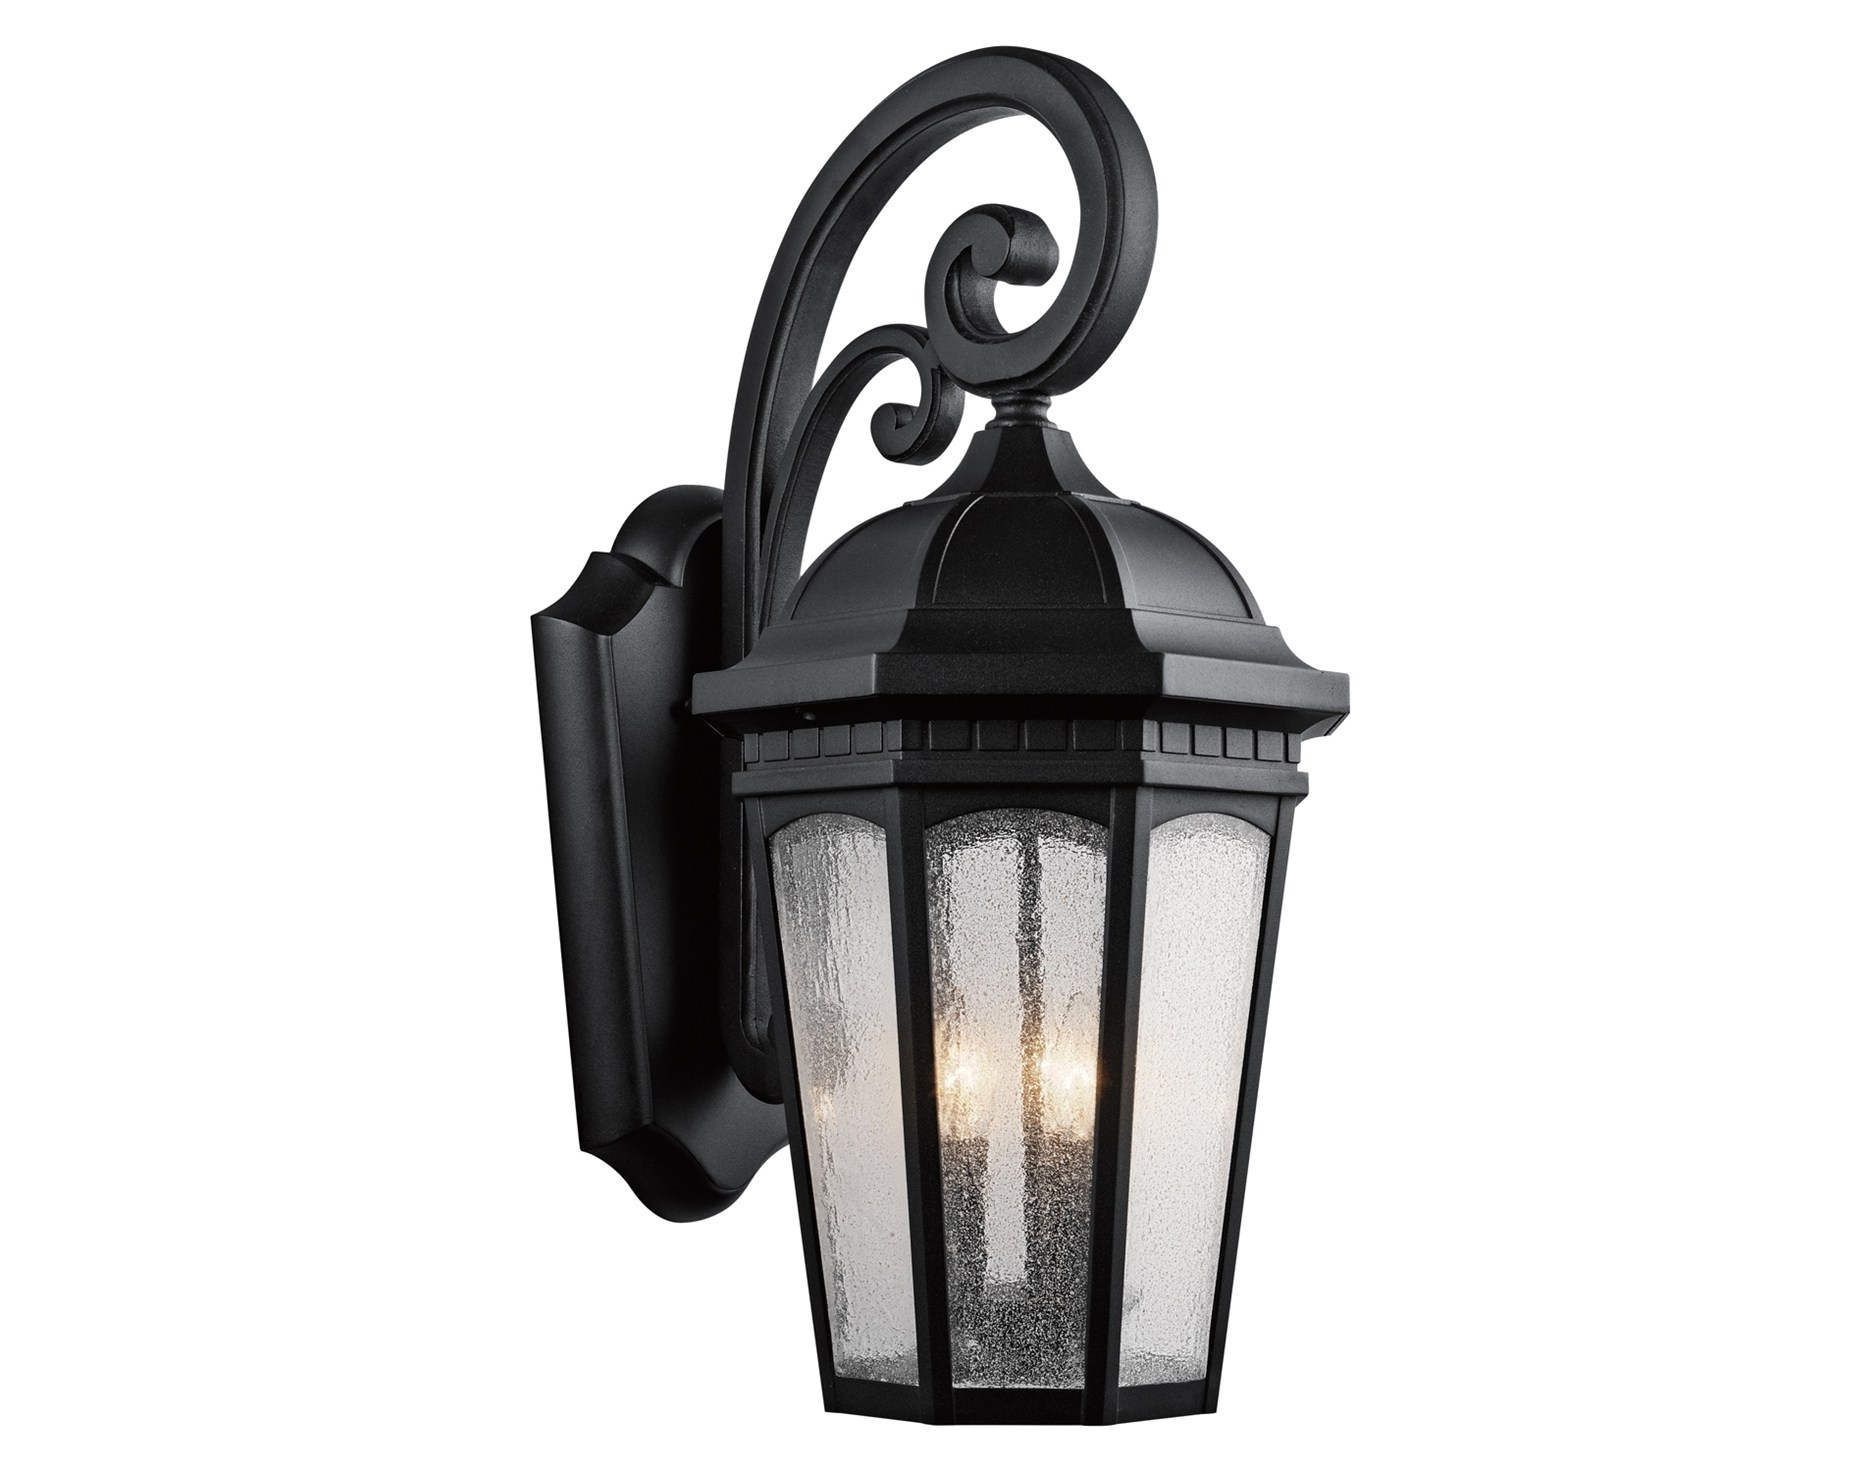 Image of: Courtyard 3 Light Kichler Outdoor Wall Lighting